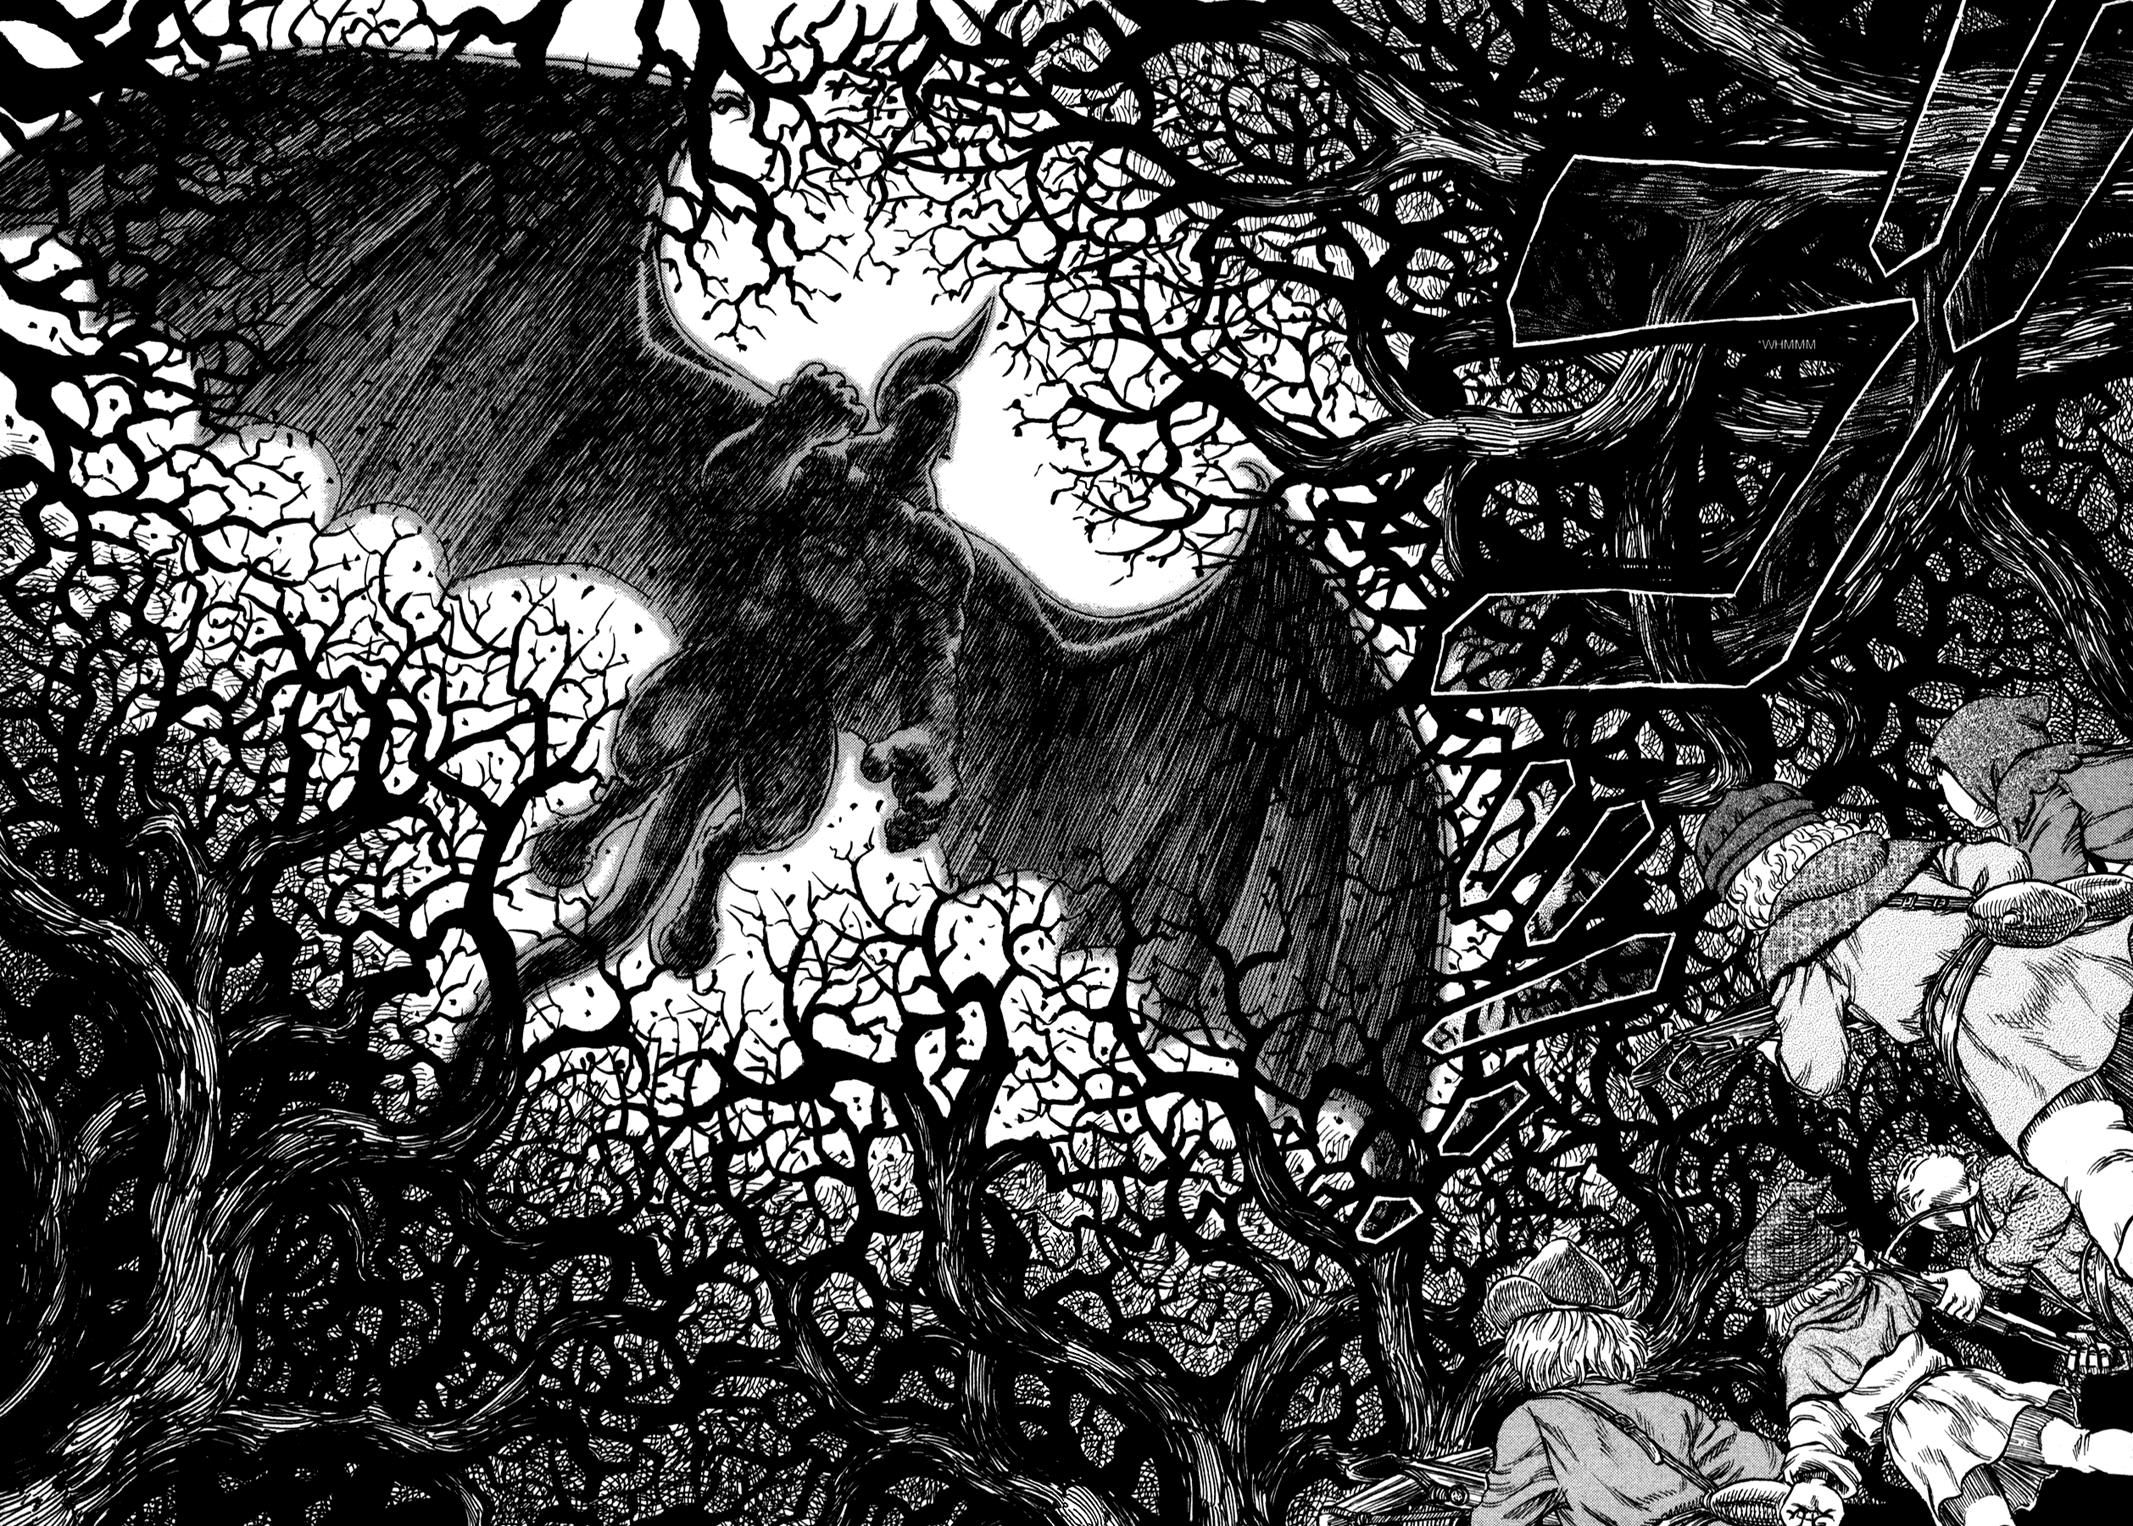 Berserk Chapter 177 Page 11 Berserk Berserk Zodd Cool Artwork